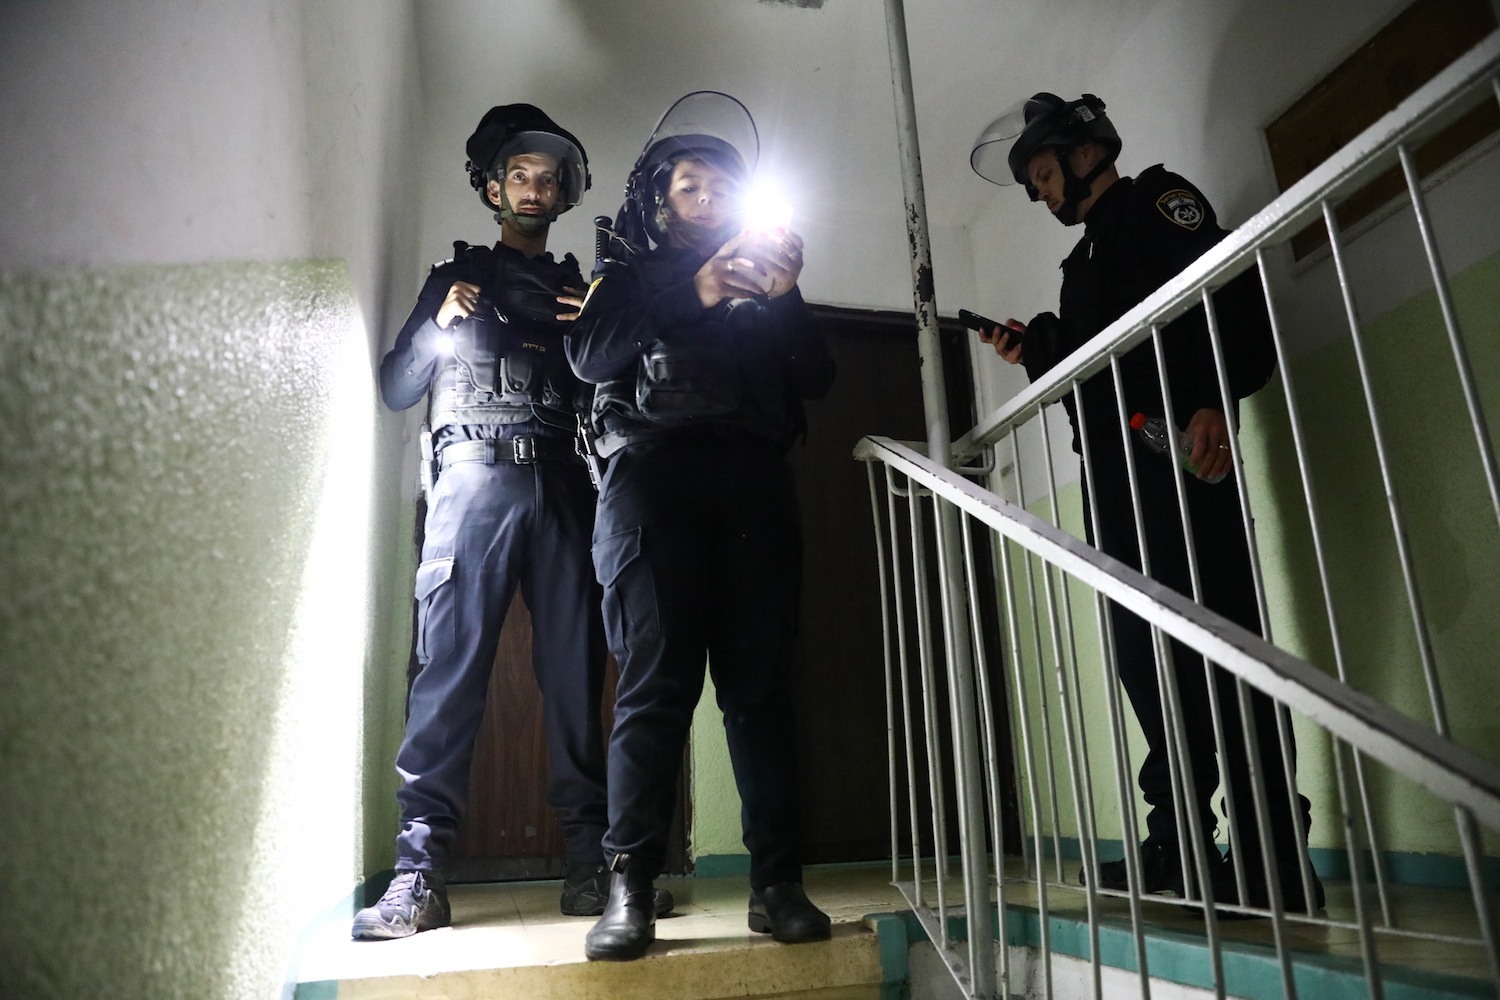 Israeli police seen in the stairwell of a building in the city of Lydd, central Israel May 13, 2021.(Yossi Aloni/Flash90)